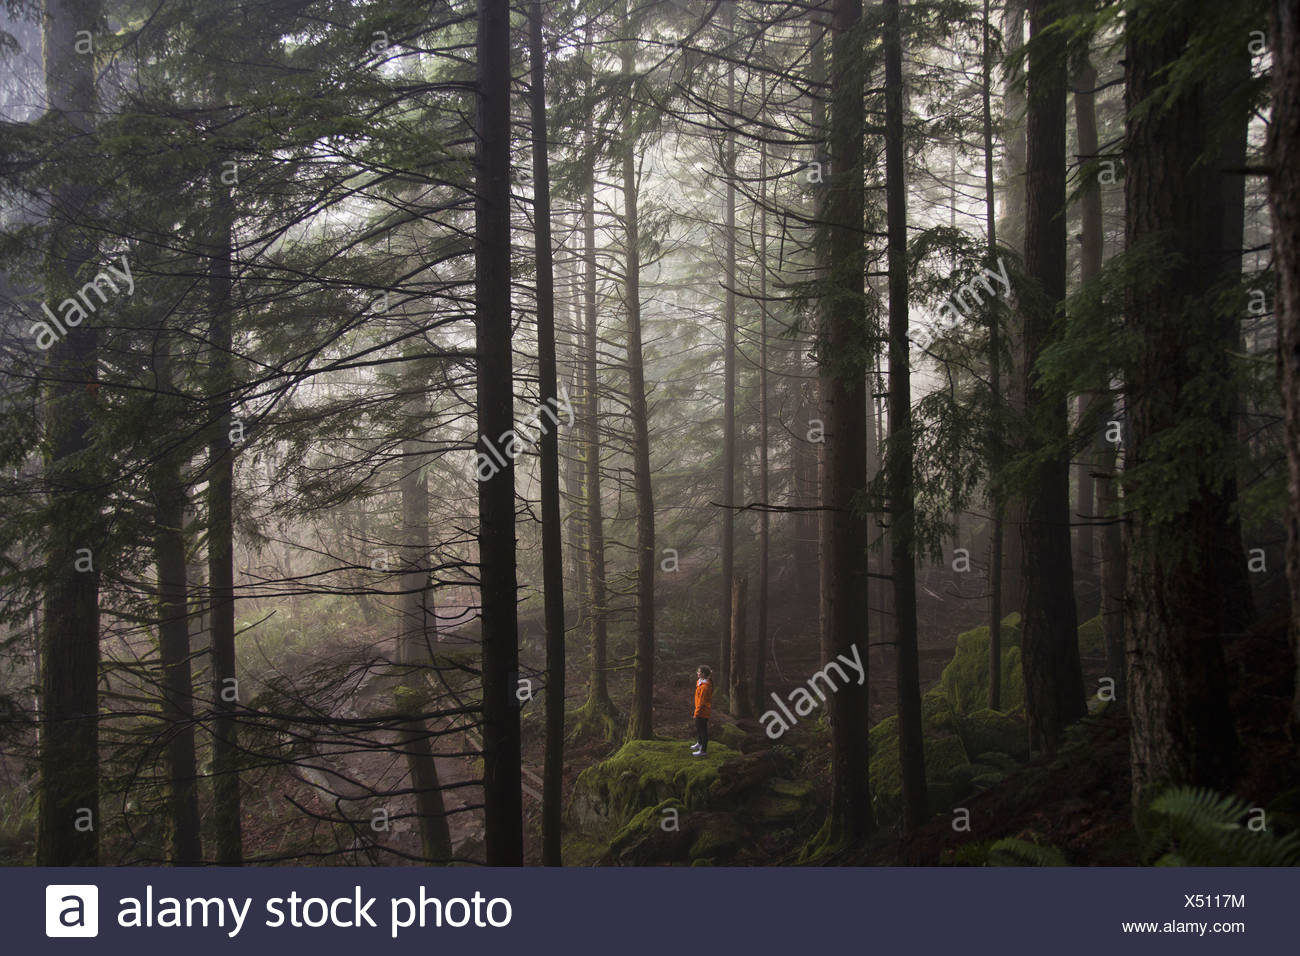 A man stands on a mossy rock overlooking a thick forest on a foggy morning near North Bend Washington - Stock Image